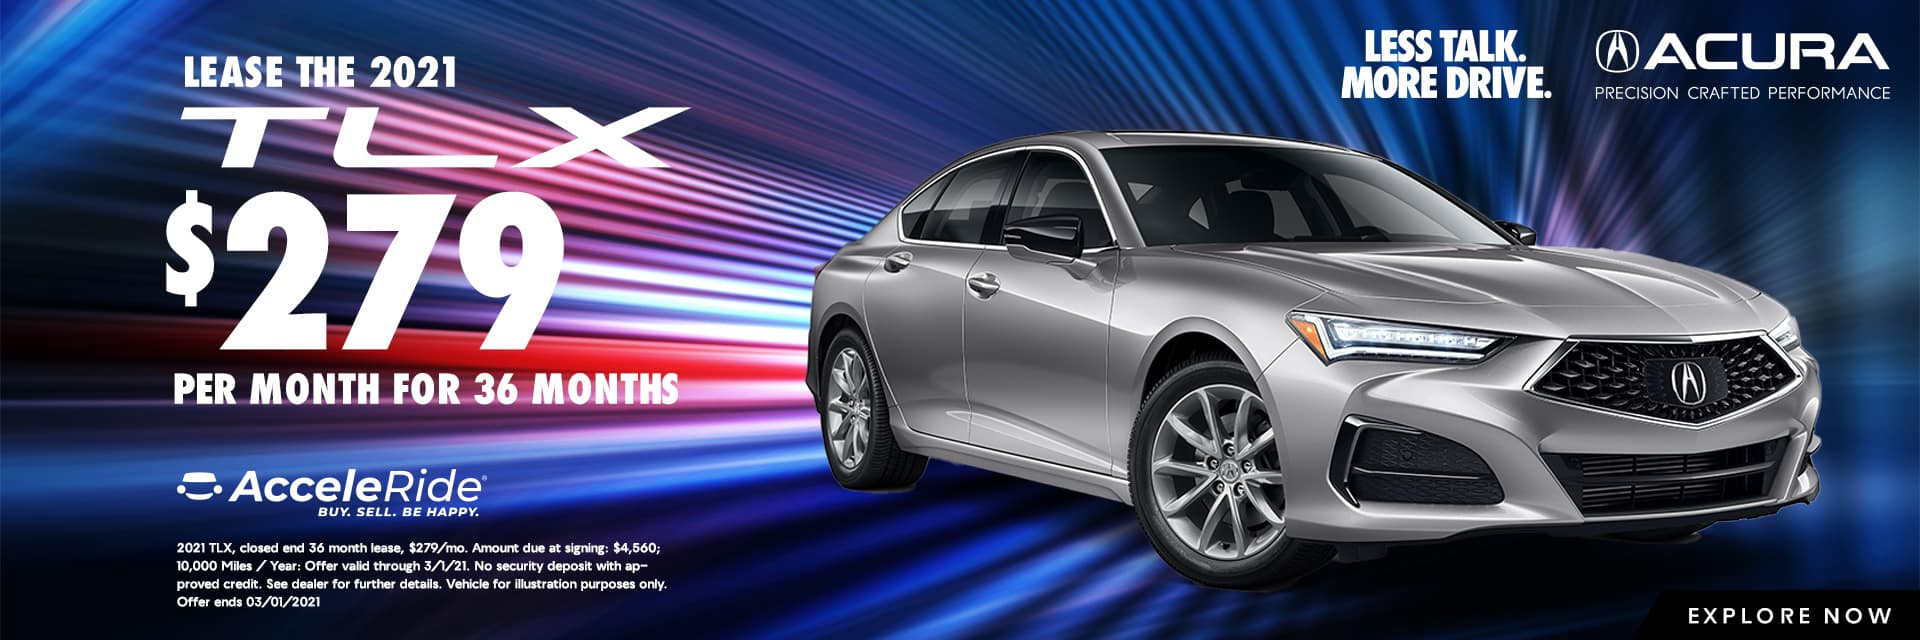 TLX-banner